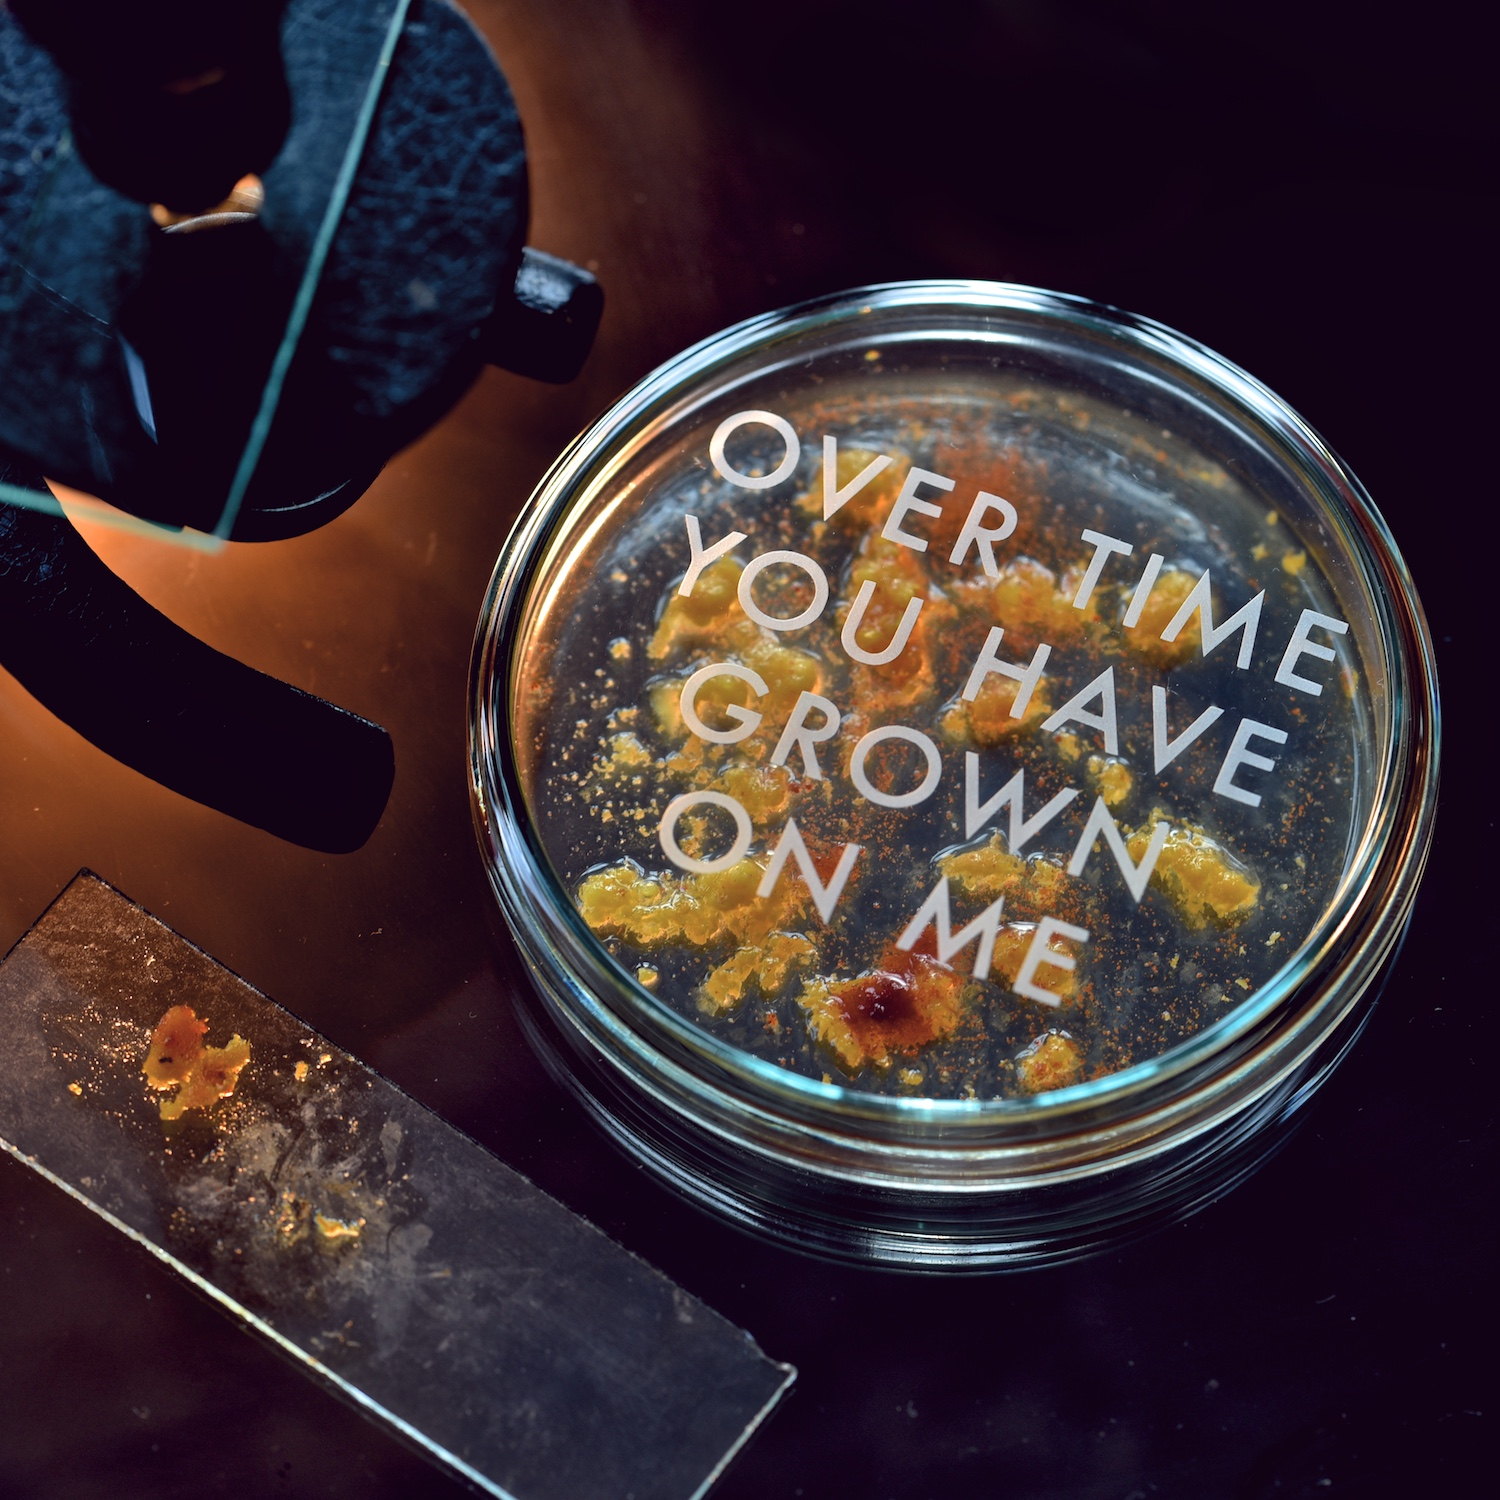 over-time-you-have-grown-on-me-etched-petri-dish-vinegar-and-brown-paper.jpg